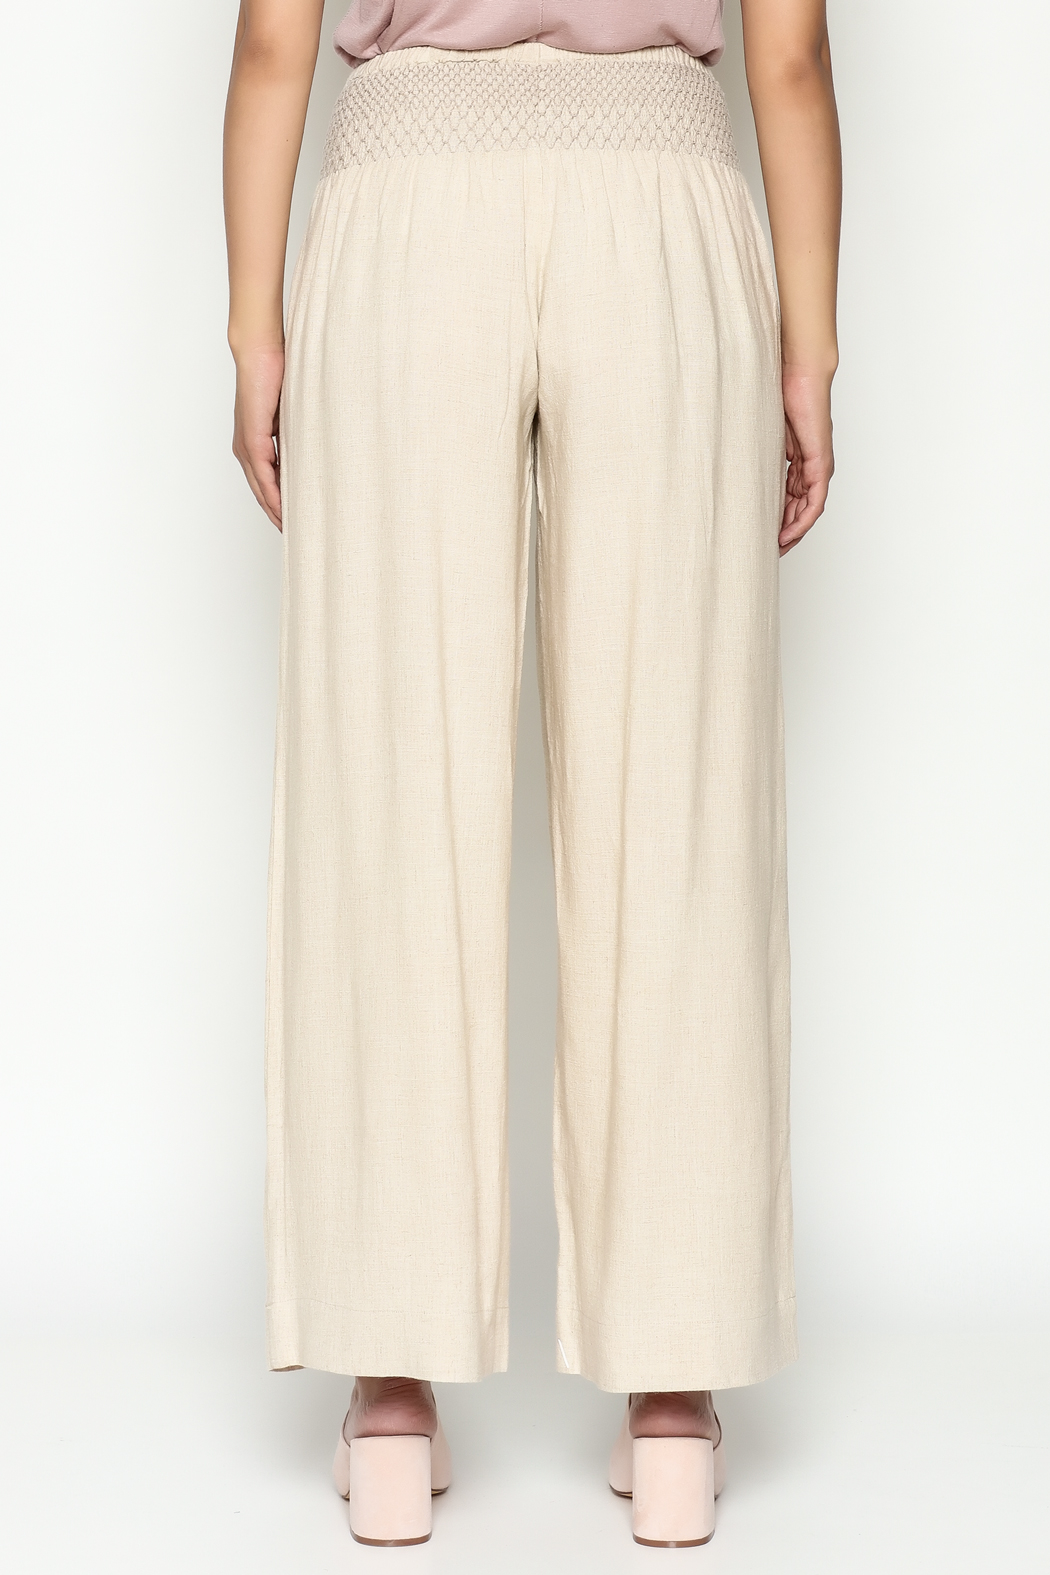 Ivy Jane Khaki Linen Pants - Back Cropped Image